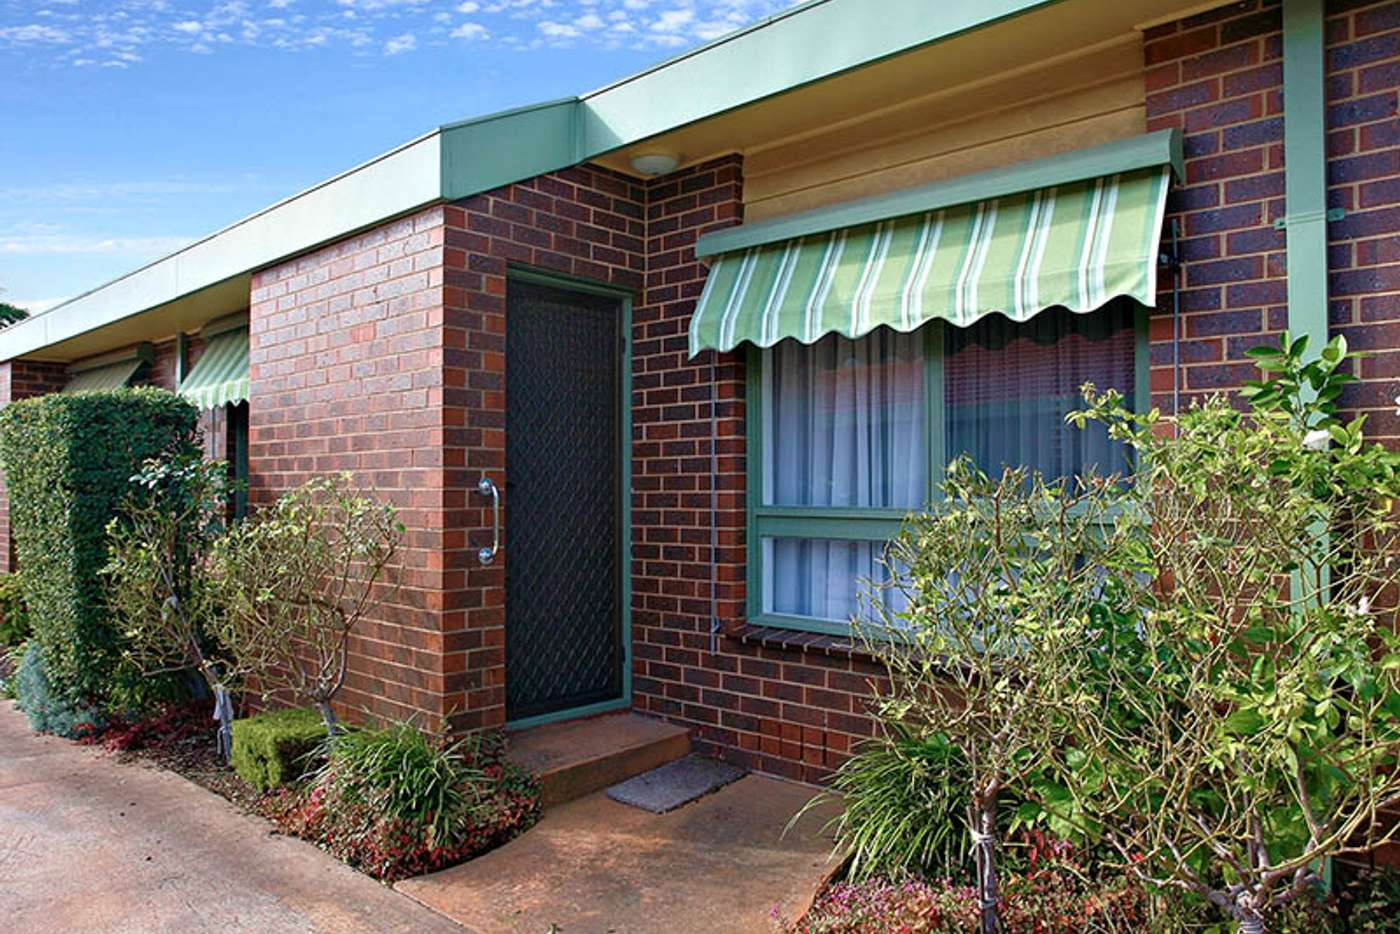 Main view of Homely unit listing, 4/118 Moreland Rd, Brunswick VIC 3056